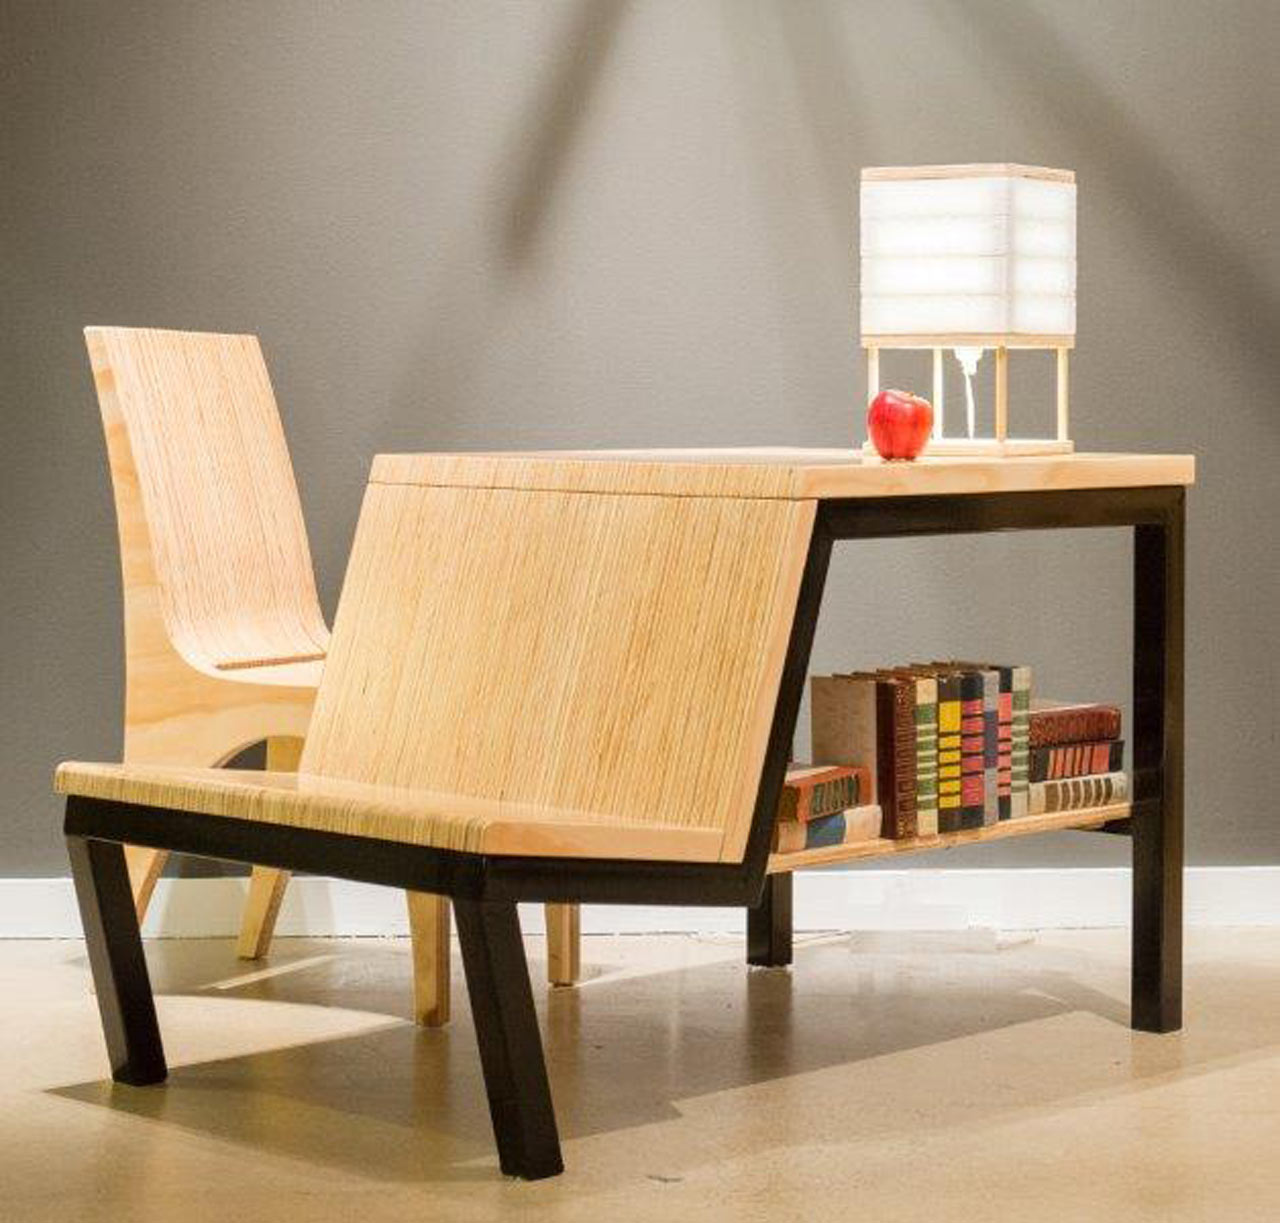 Multifunctional Desk-Turned-Dining Table for Small Spaces